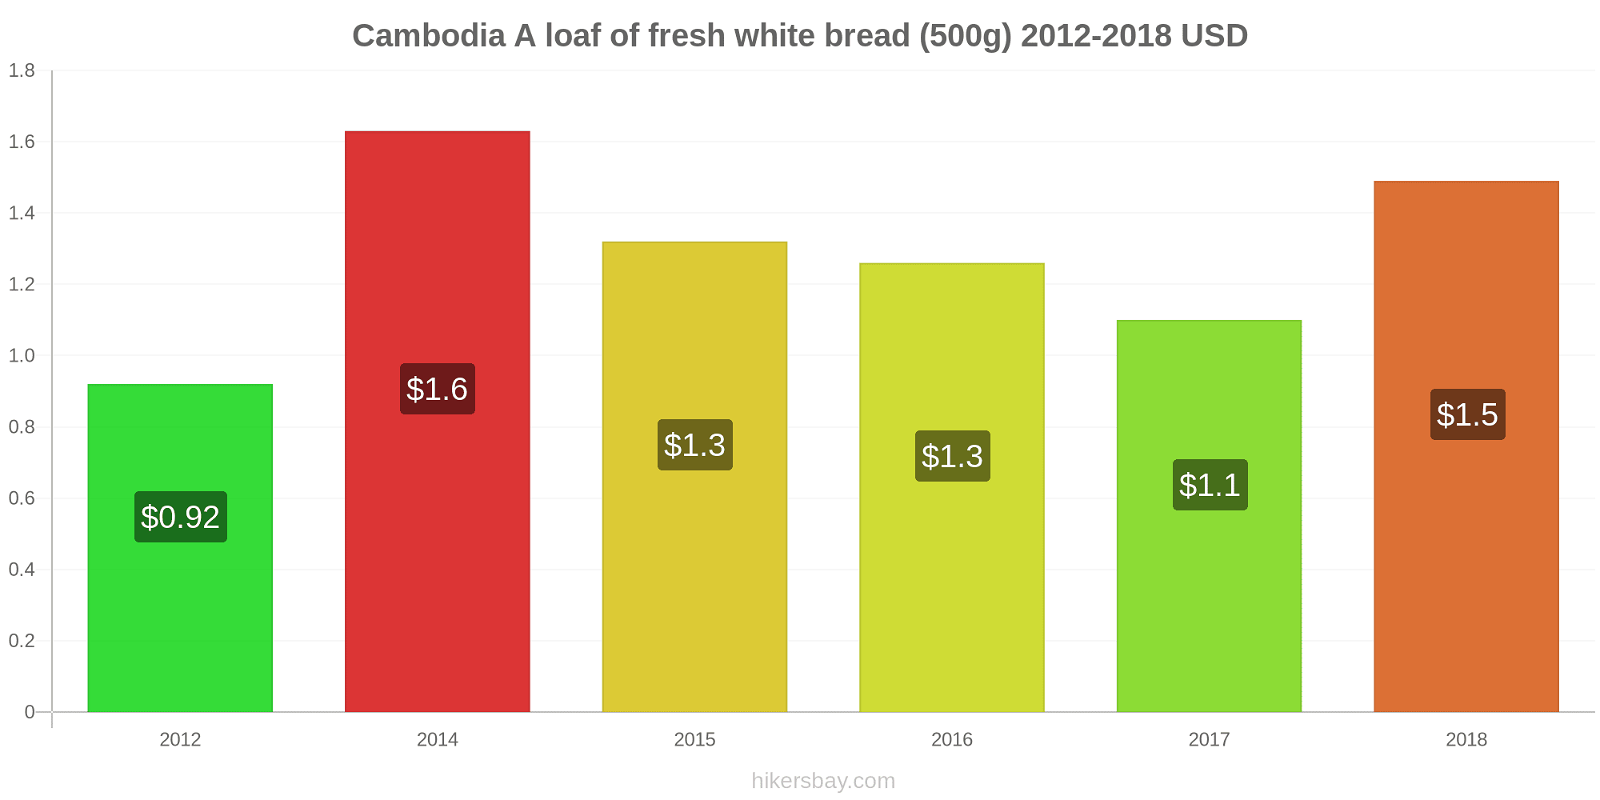 Cambodia price changes A loaf of fresh white bread (500g) hikersbay.com